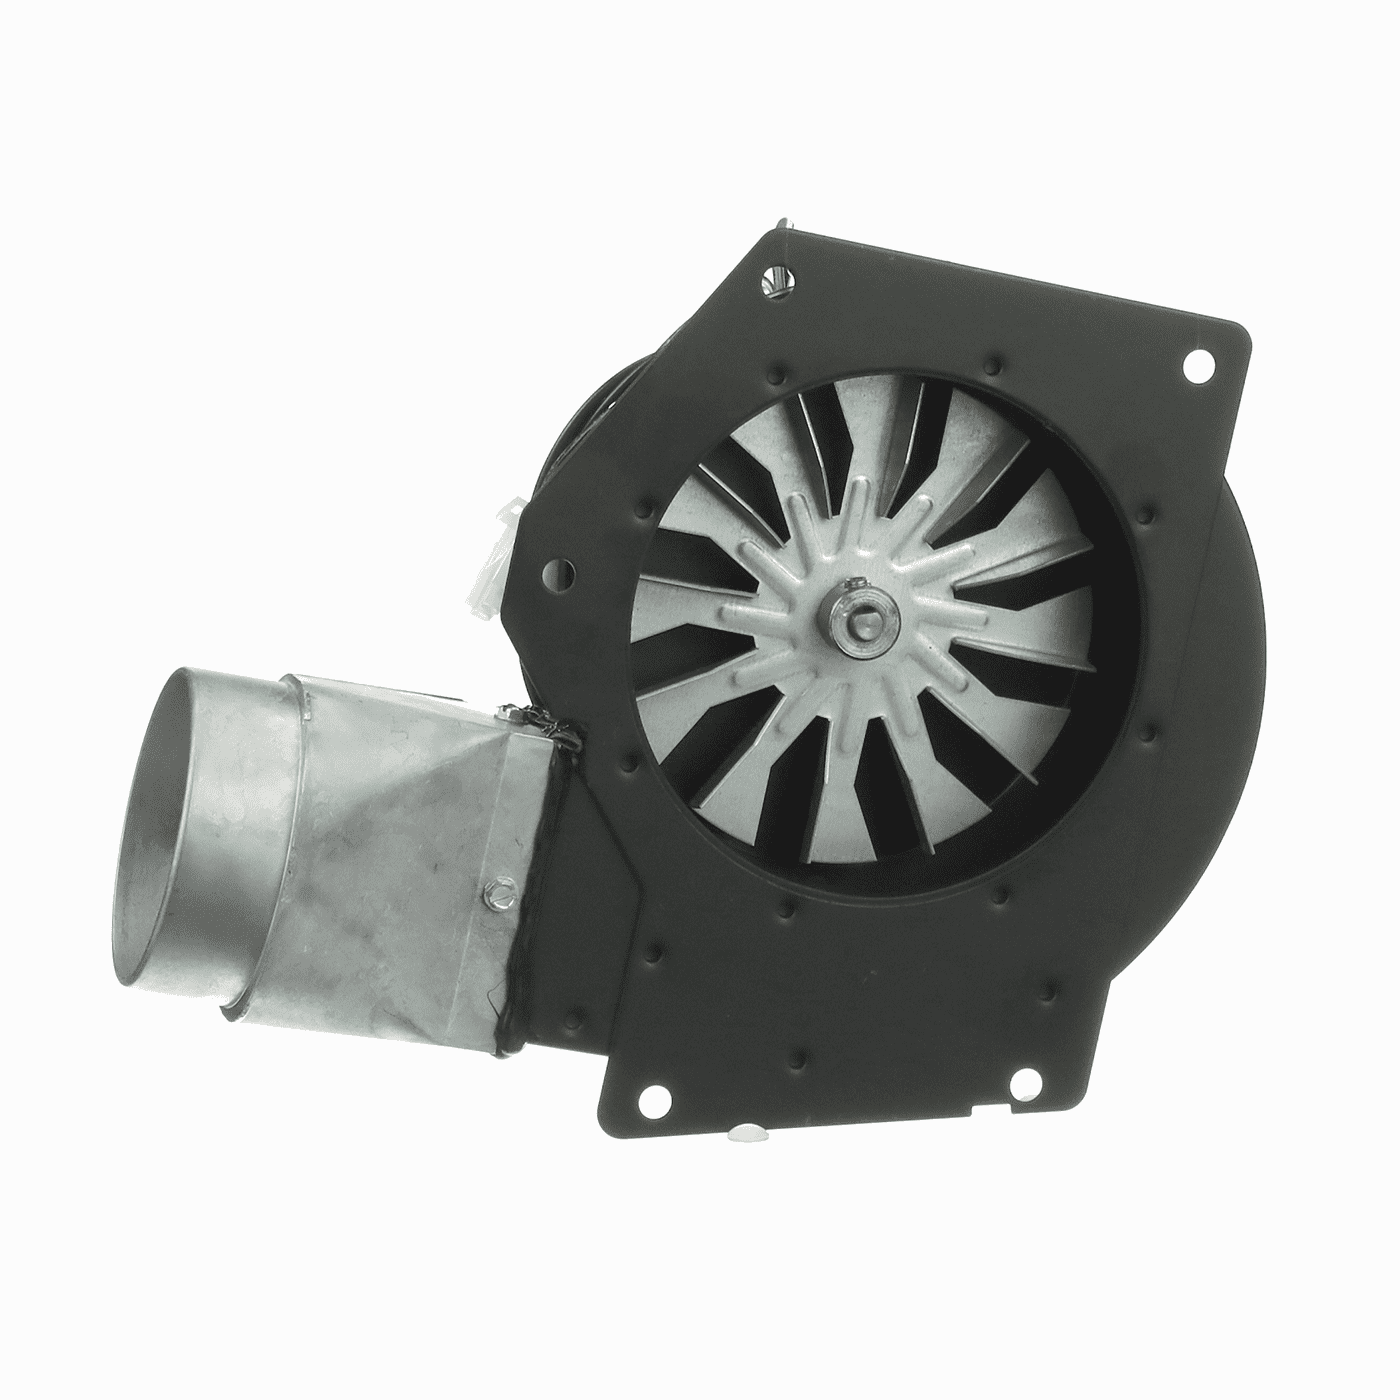 12156009 Whitfield Exhaust Blower For All Advantage